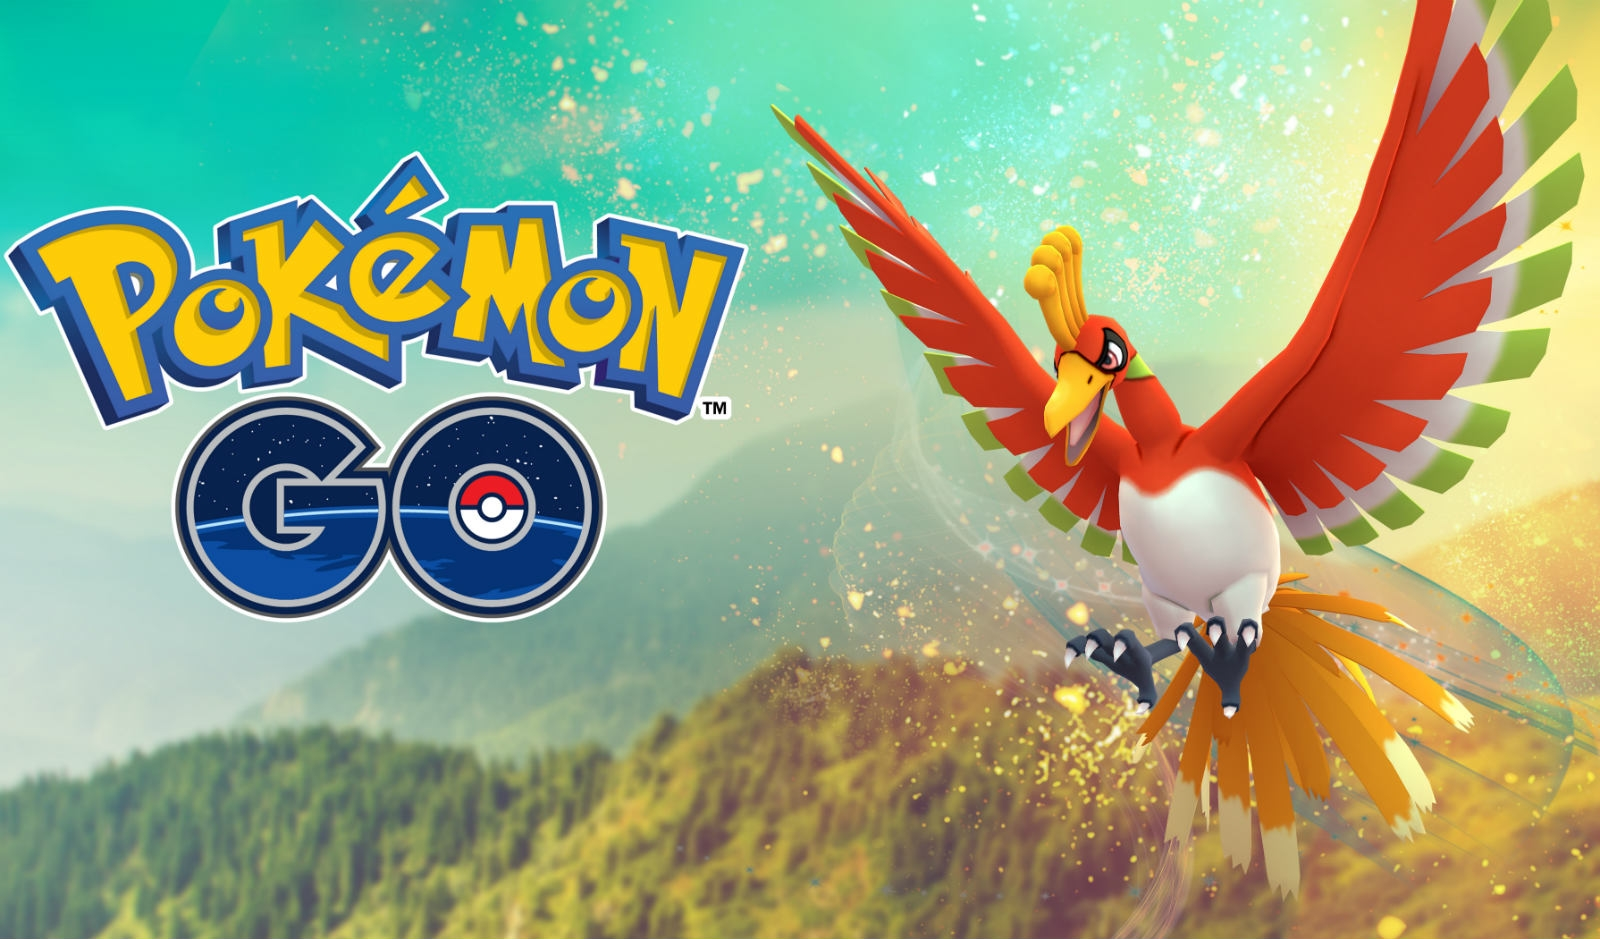 'Pokémon Go' legendary Ho-Oh is catchable for limited time | DeviceDaily.com